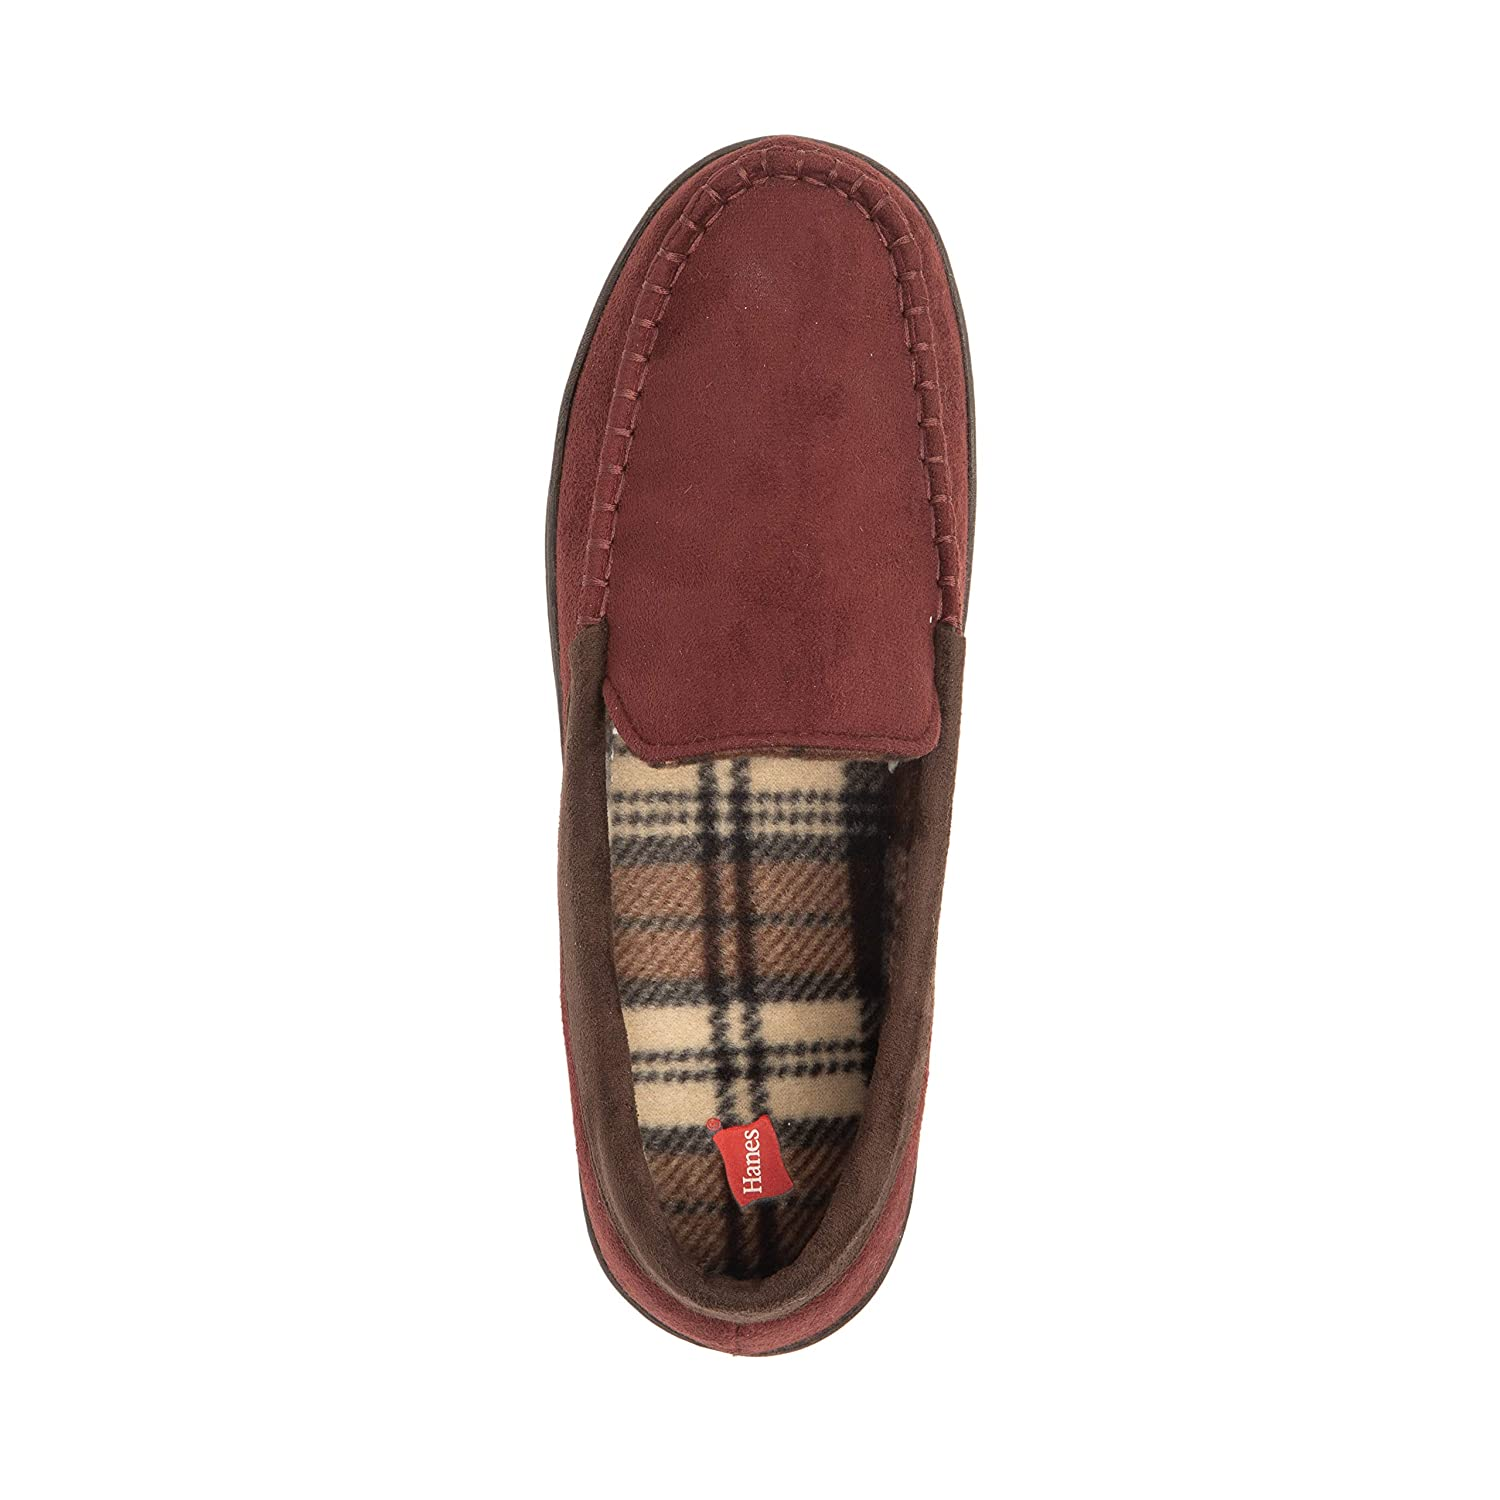 Hanes Mens Moccasin Slipper House Shoe with Indoor Outdoor Memory Foam Sole Fresh IQ Odor Protection